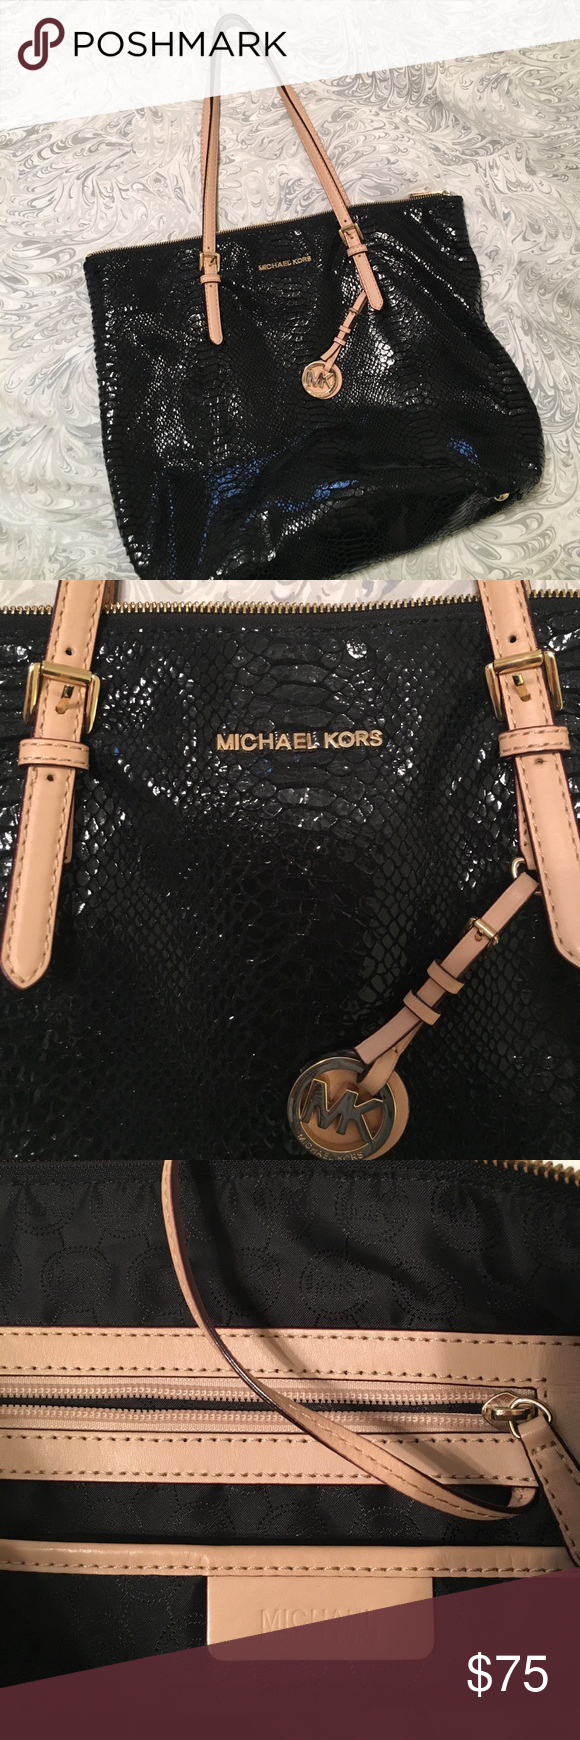 2435e56e1d92 ... denmark michael kors black python jet set tote like new condition  authentic mk purchased from 6fca3